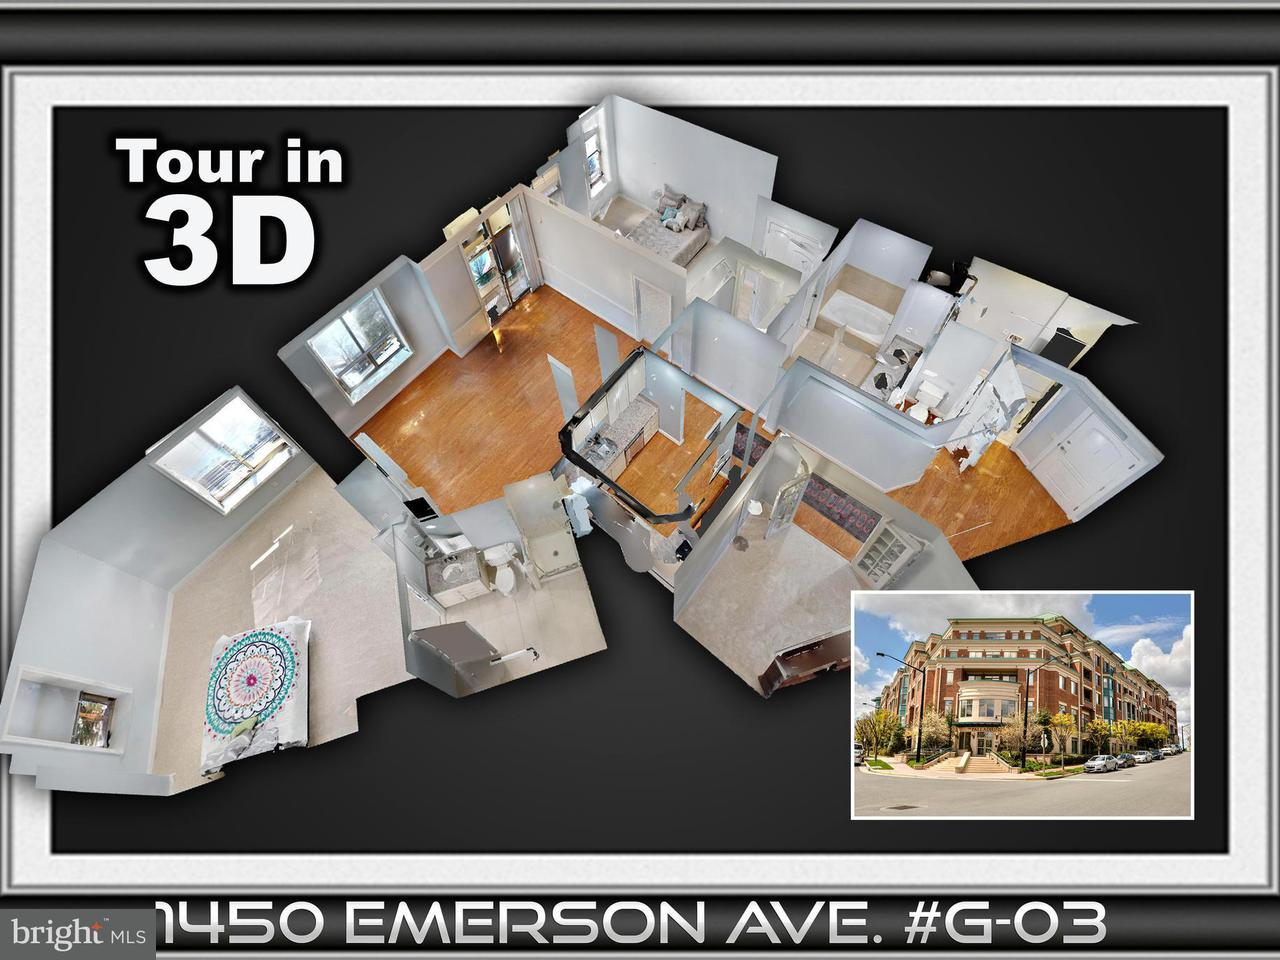 Condominium for Sale at 1450 Emerson Ave #G03-3 1450 Emerson Ave #G03-3 McLean, Virginia 22101 United States